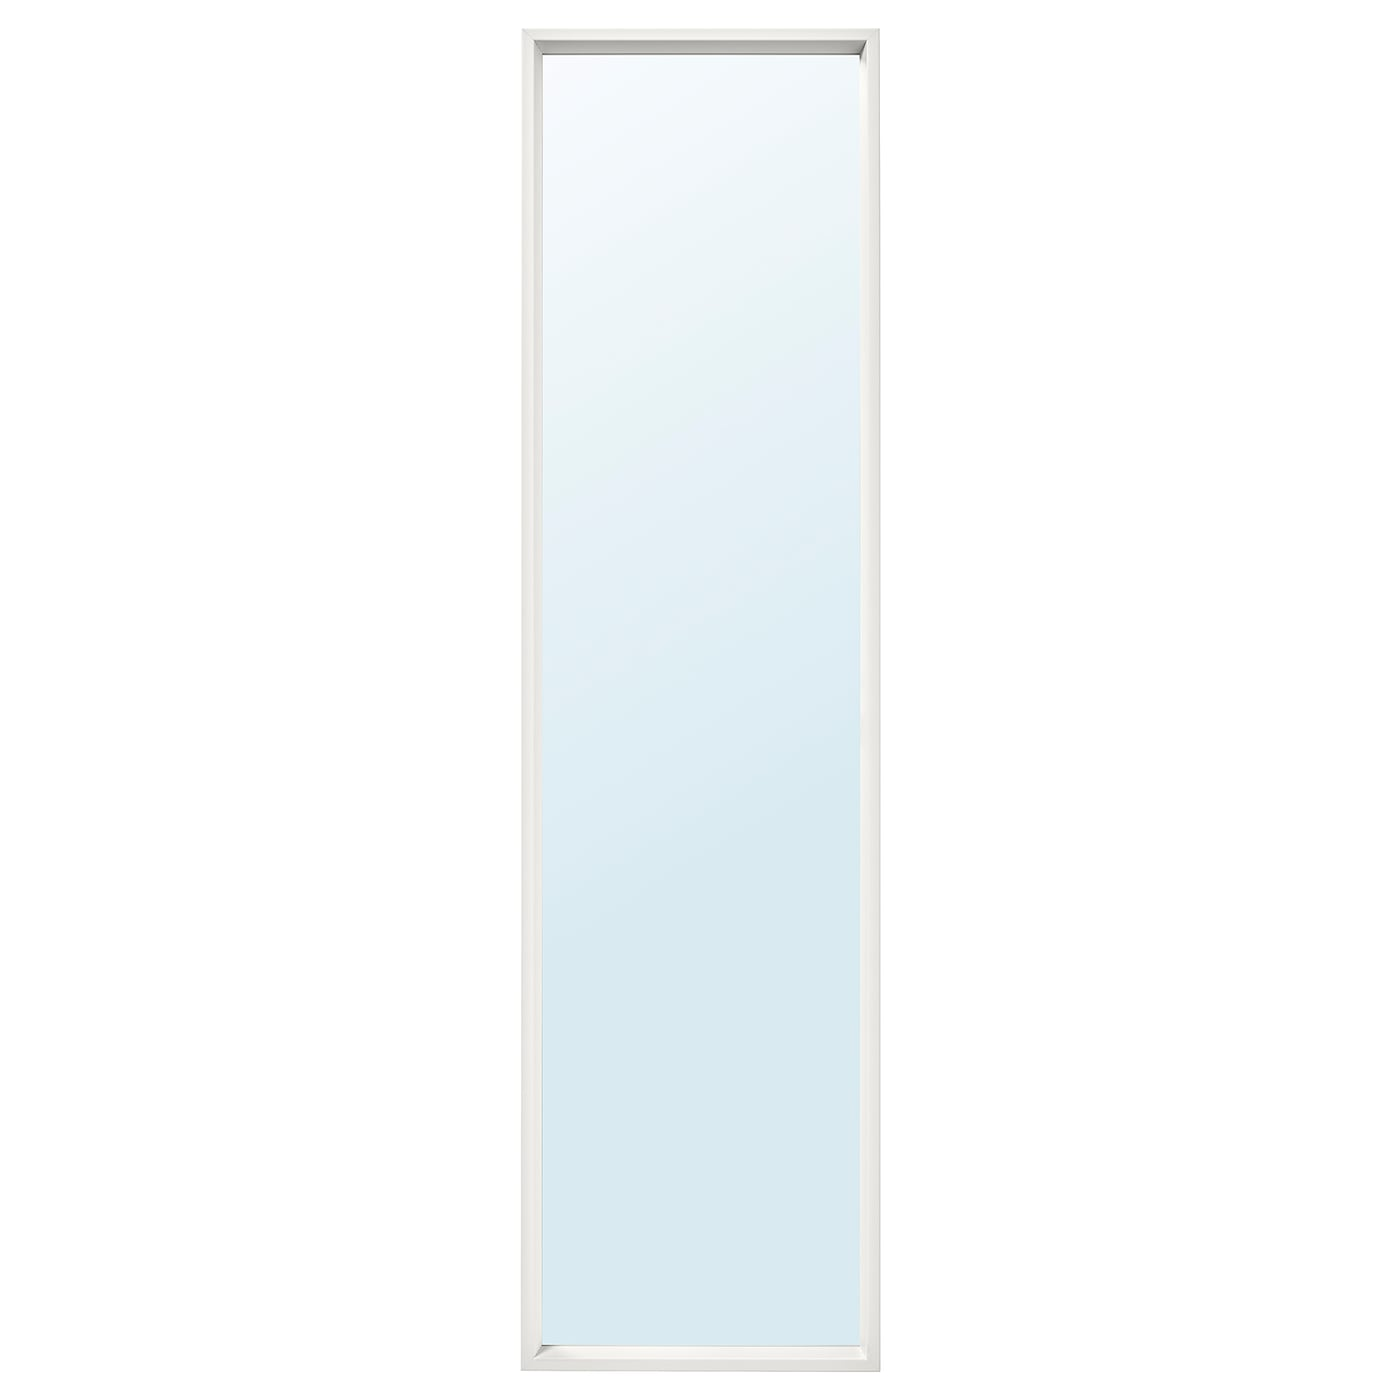 IKEA NISSEDAL mirror Can be hung horizontally or vertically.